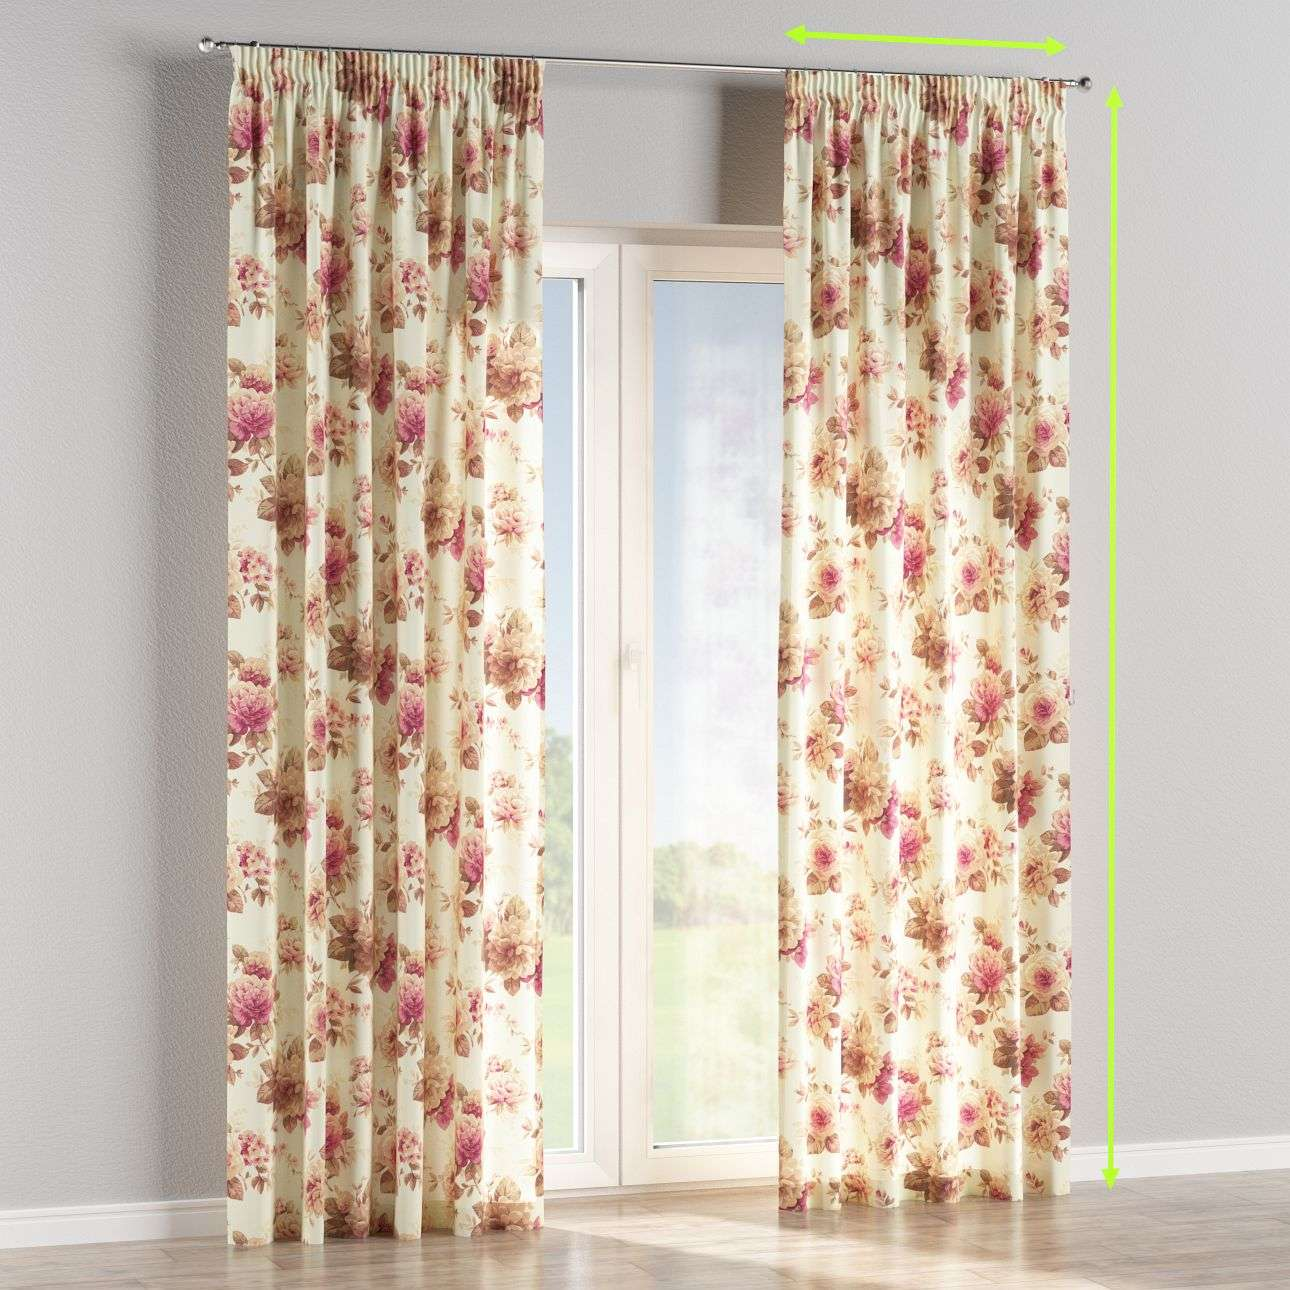 Pencil pleat lined curtains in collection Mirella, fabric: 141-06